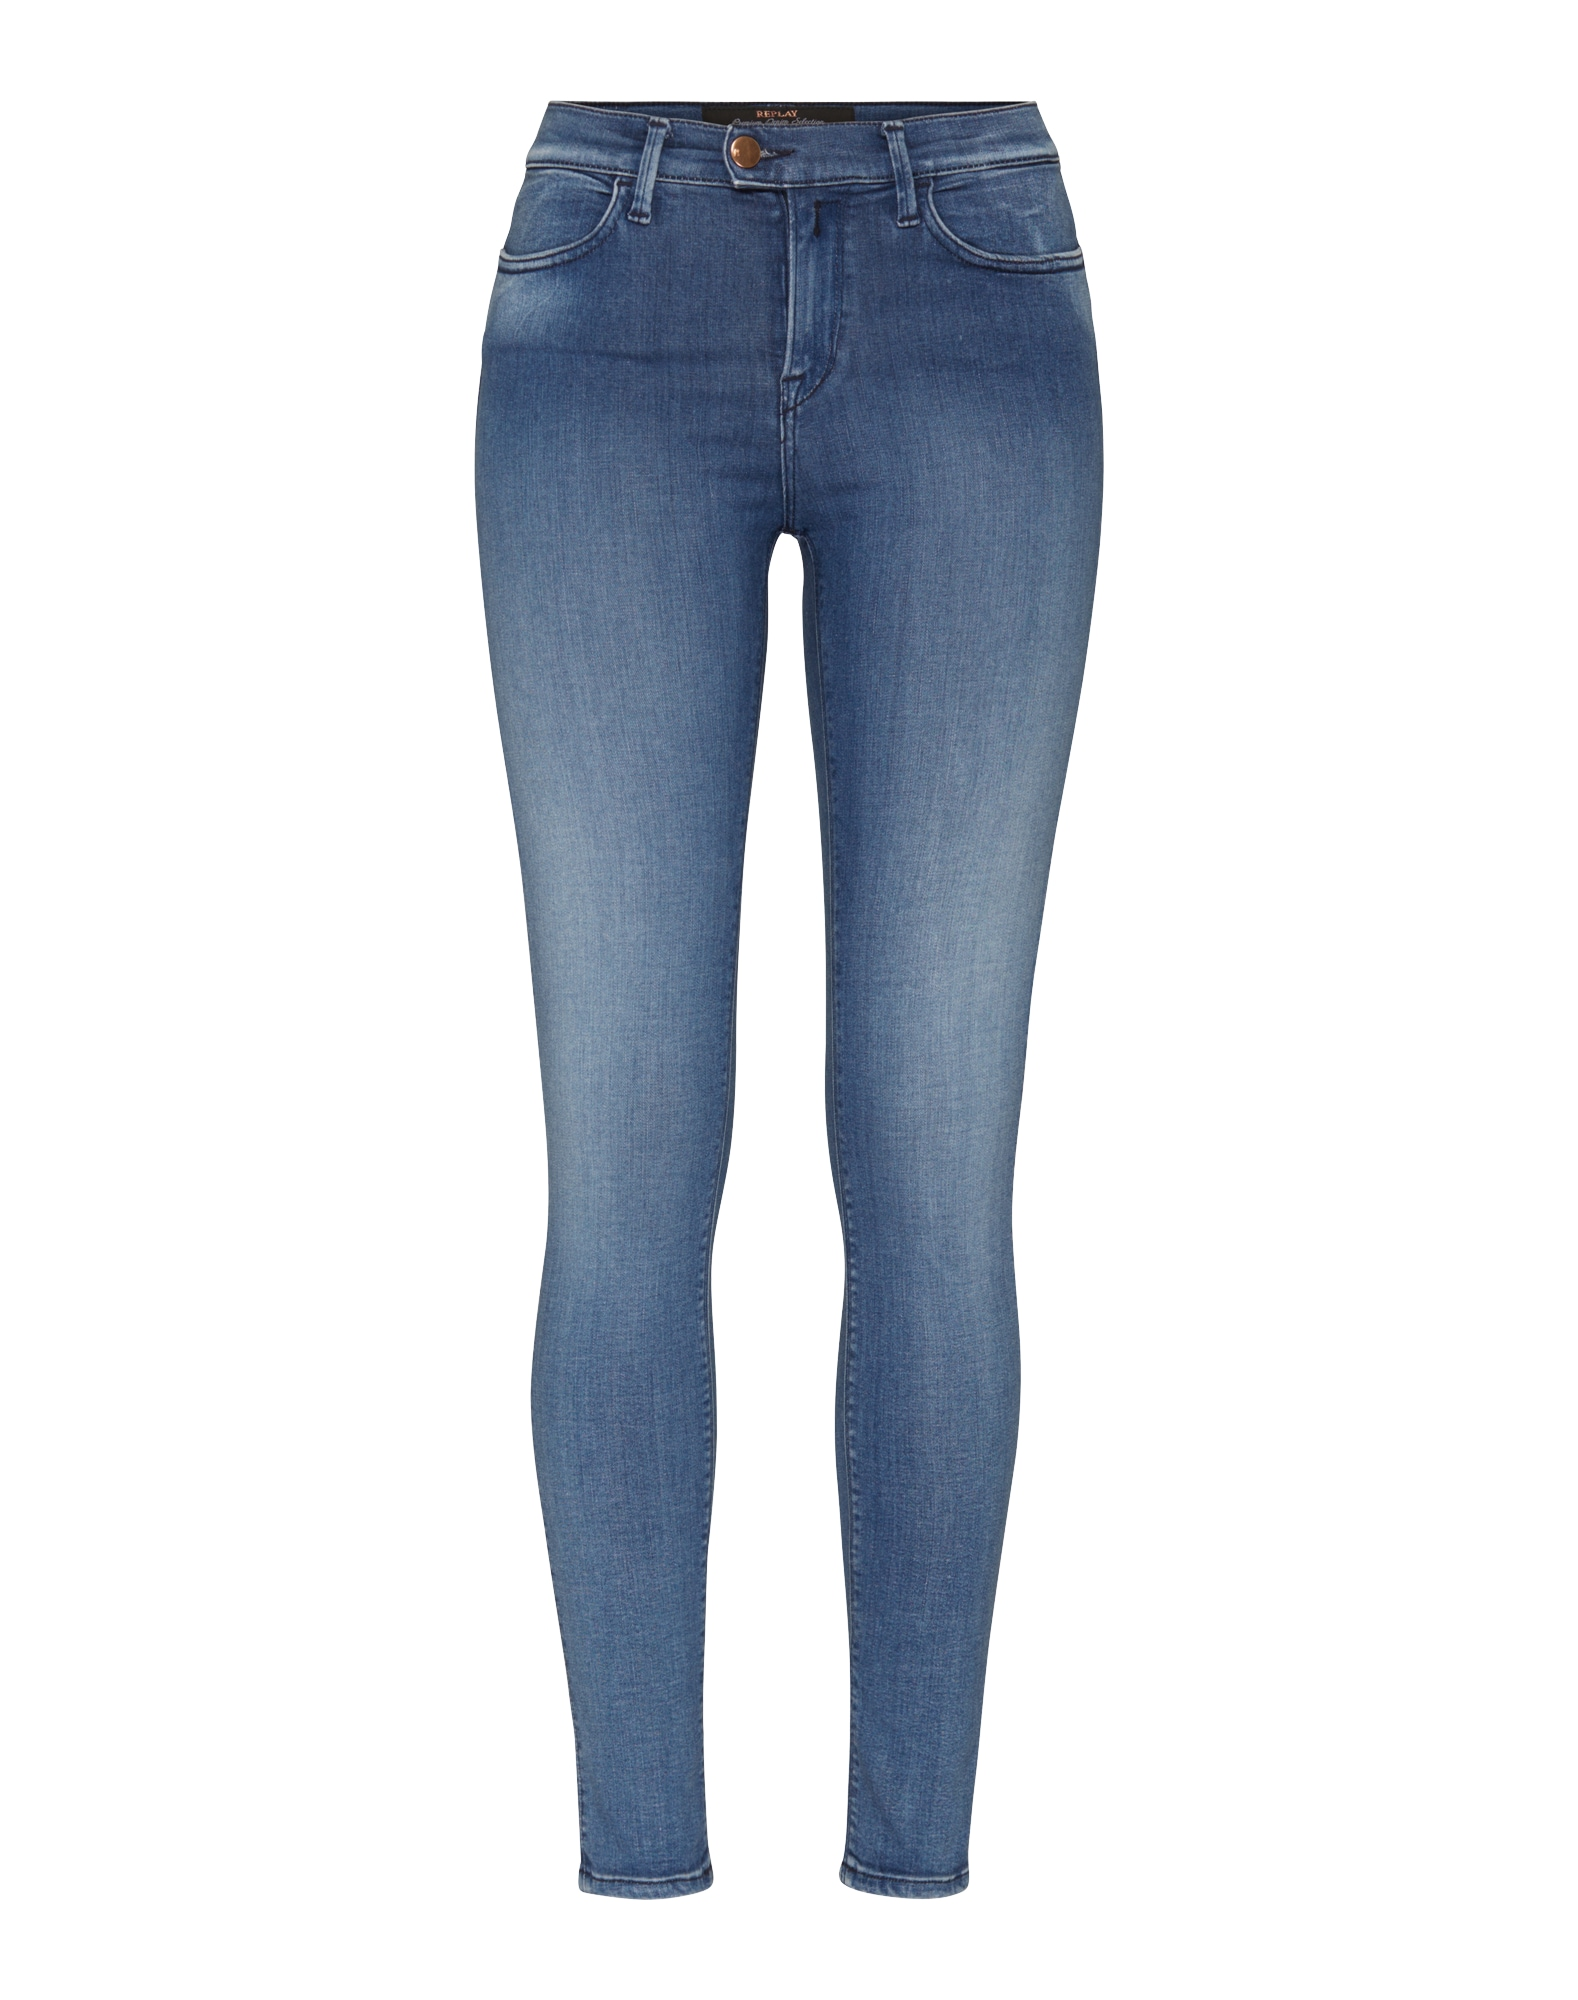 REPLAY Dames Jeans Touch blue denim